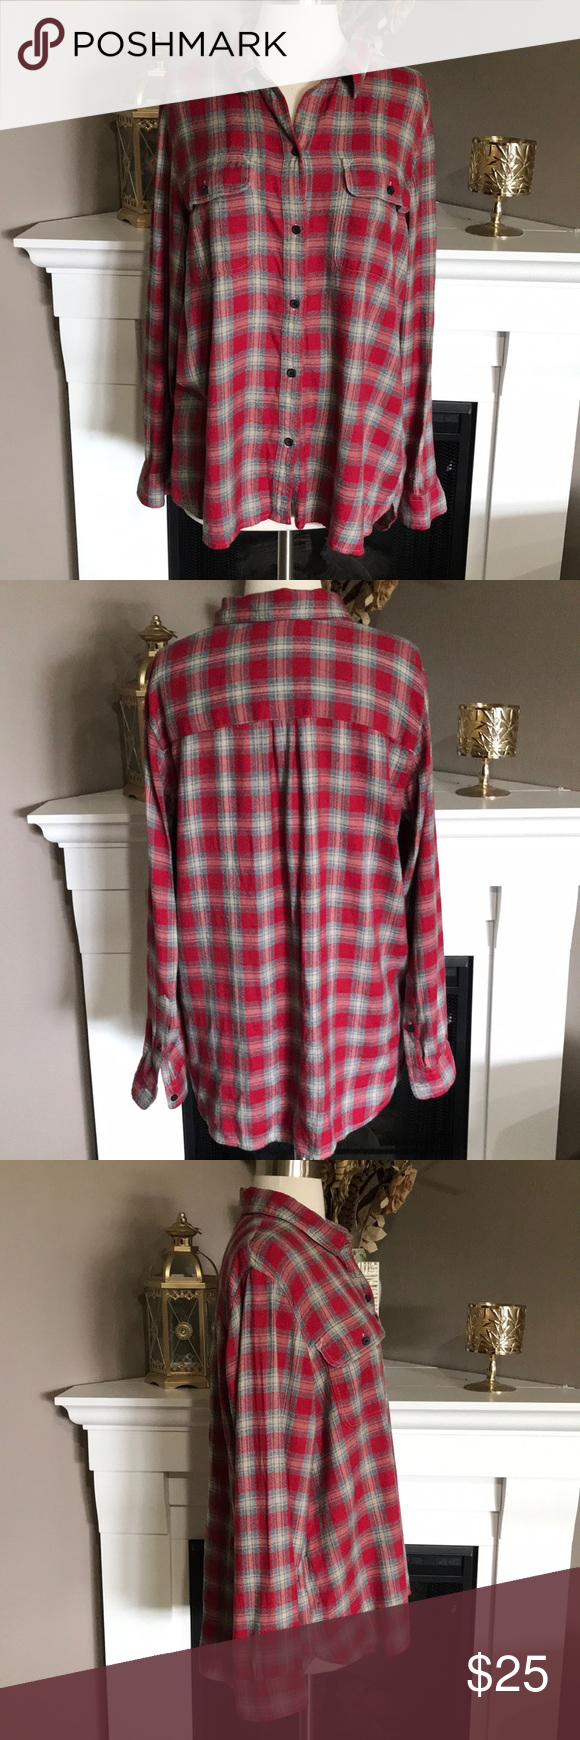 Red flannel backpack  Madewell RedTan Oversized Flannel Shirt  Oversized flannel